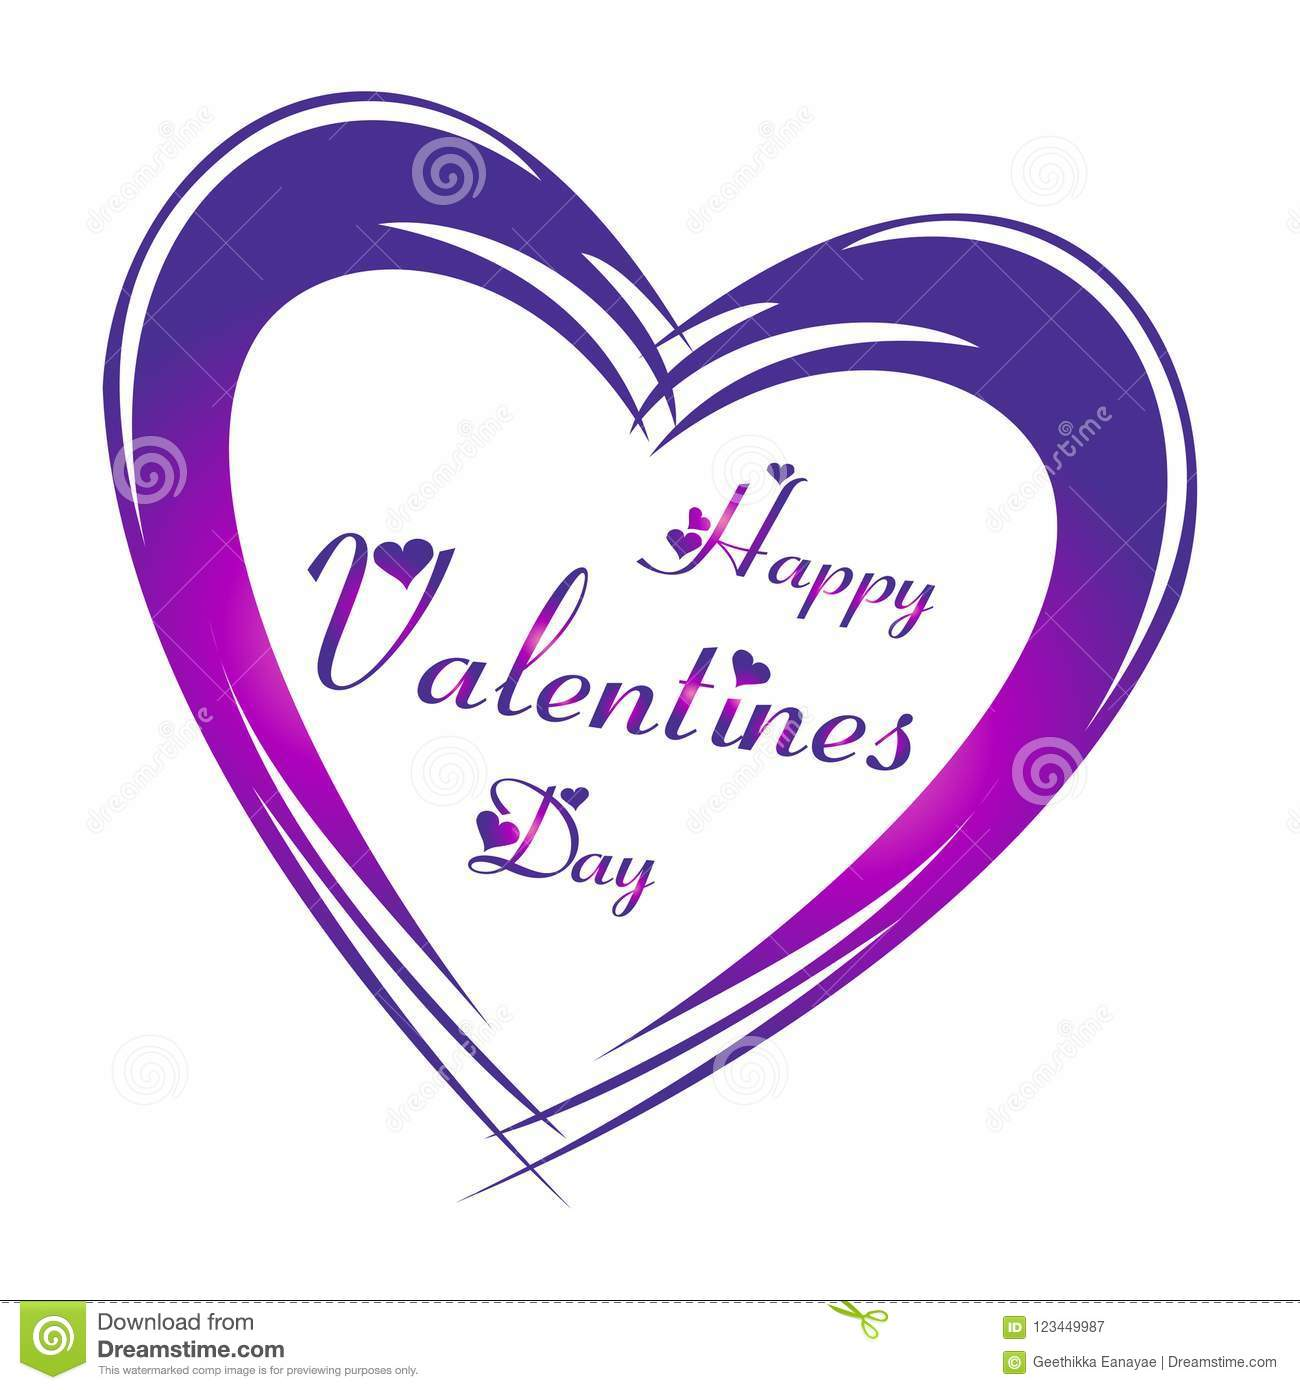 Happy Valentine S Day In Purple Color Lettering With Heart Shapes And Big Purple Heart Around